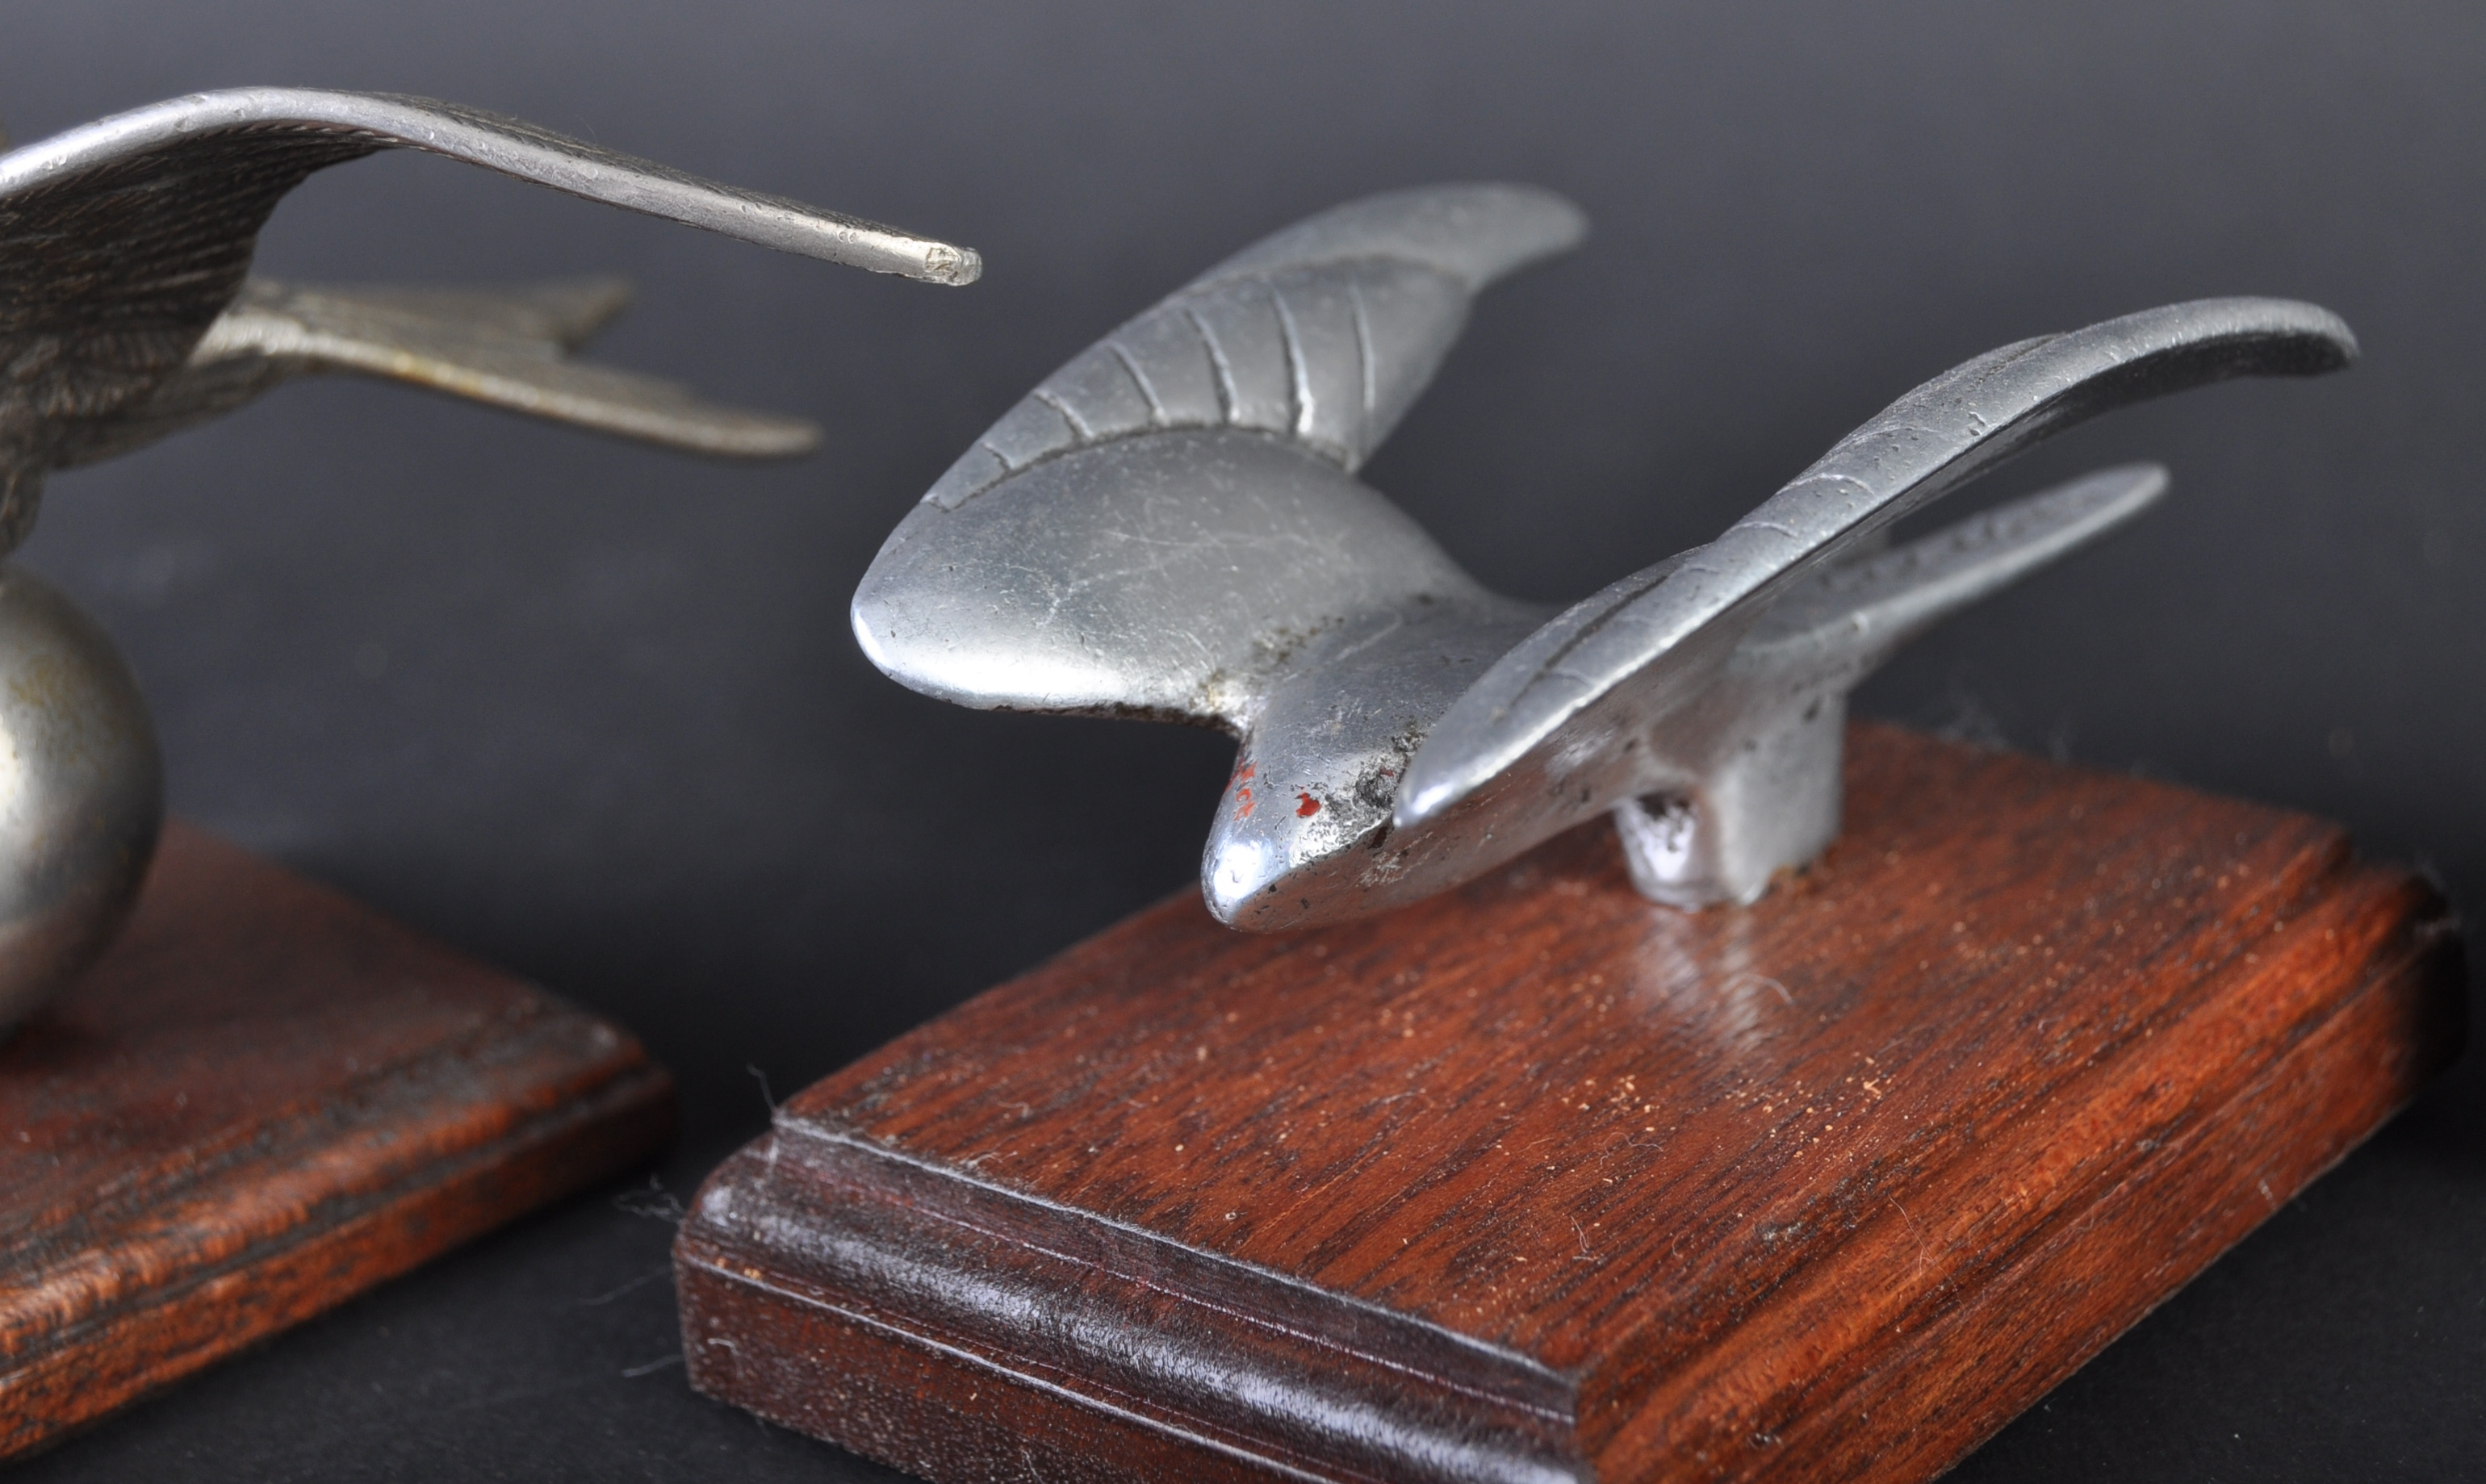 CAR MASCOTS - COLLECTION OF SWALLOW CAR MASCOTS - Image 3 of 6